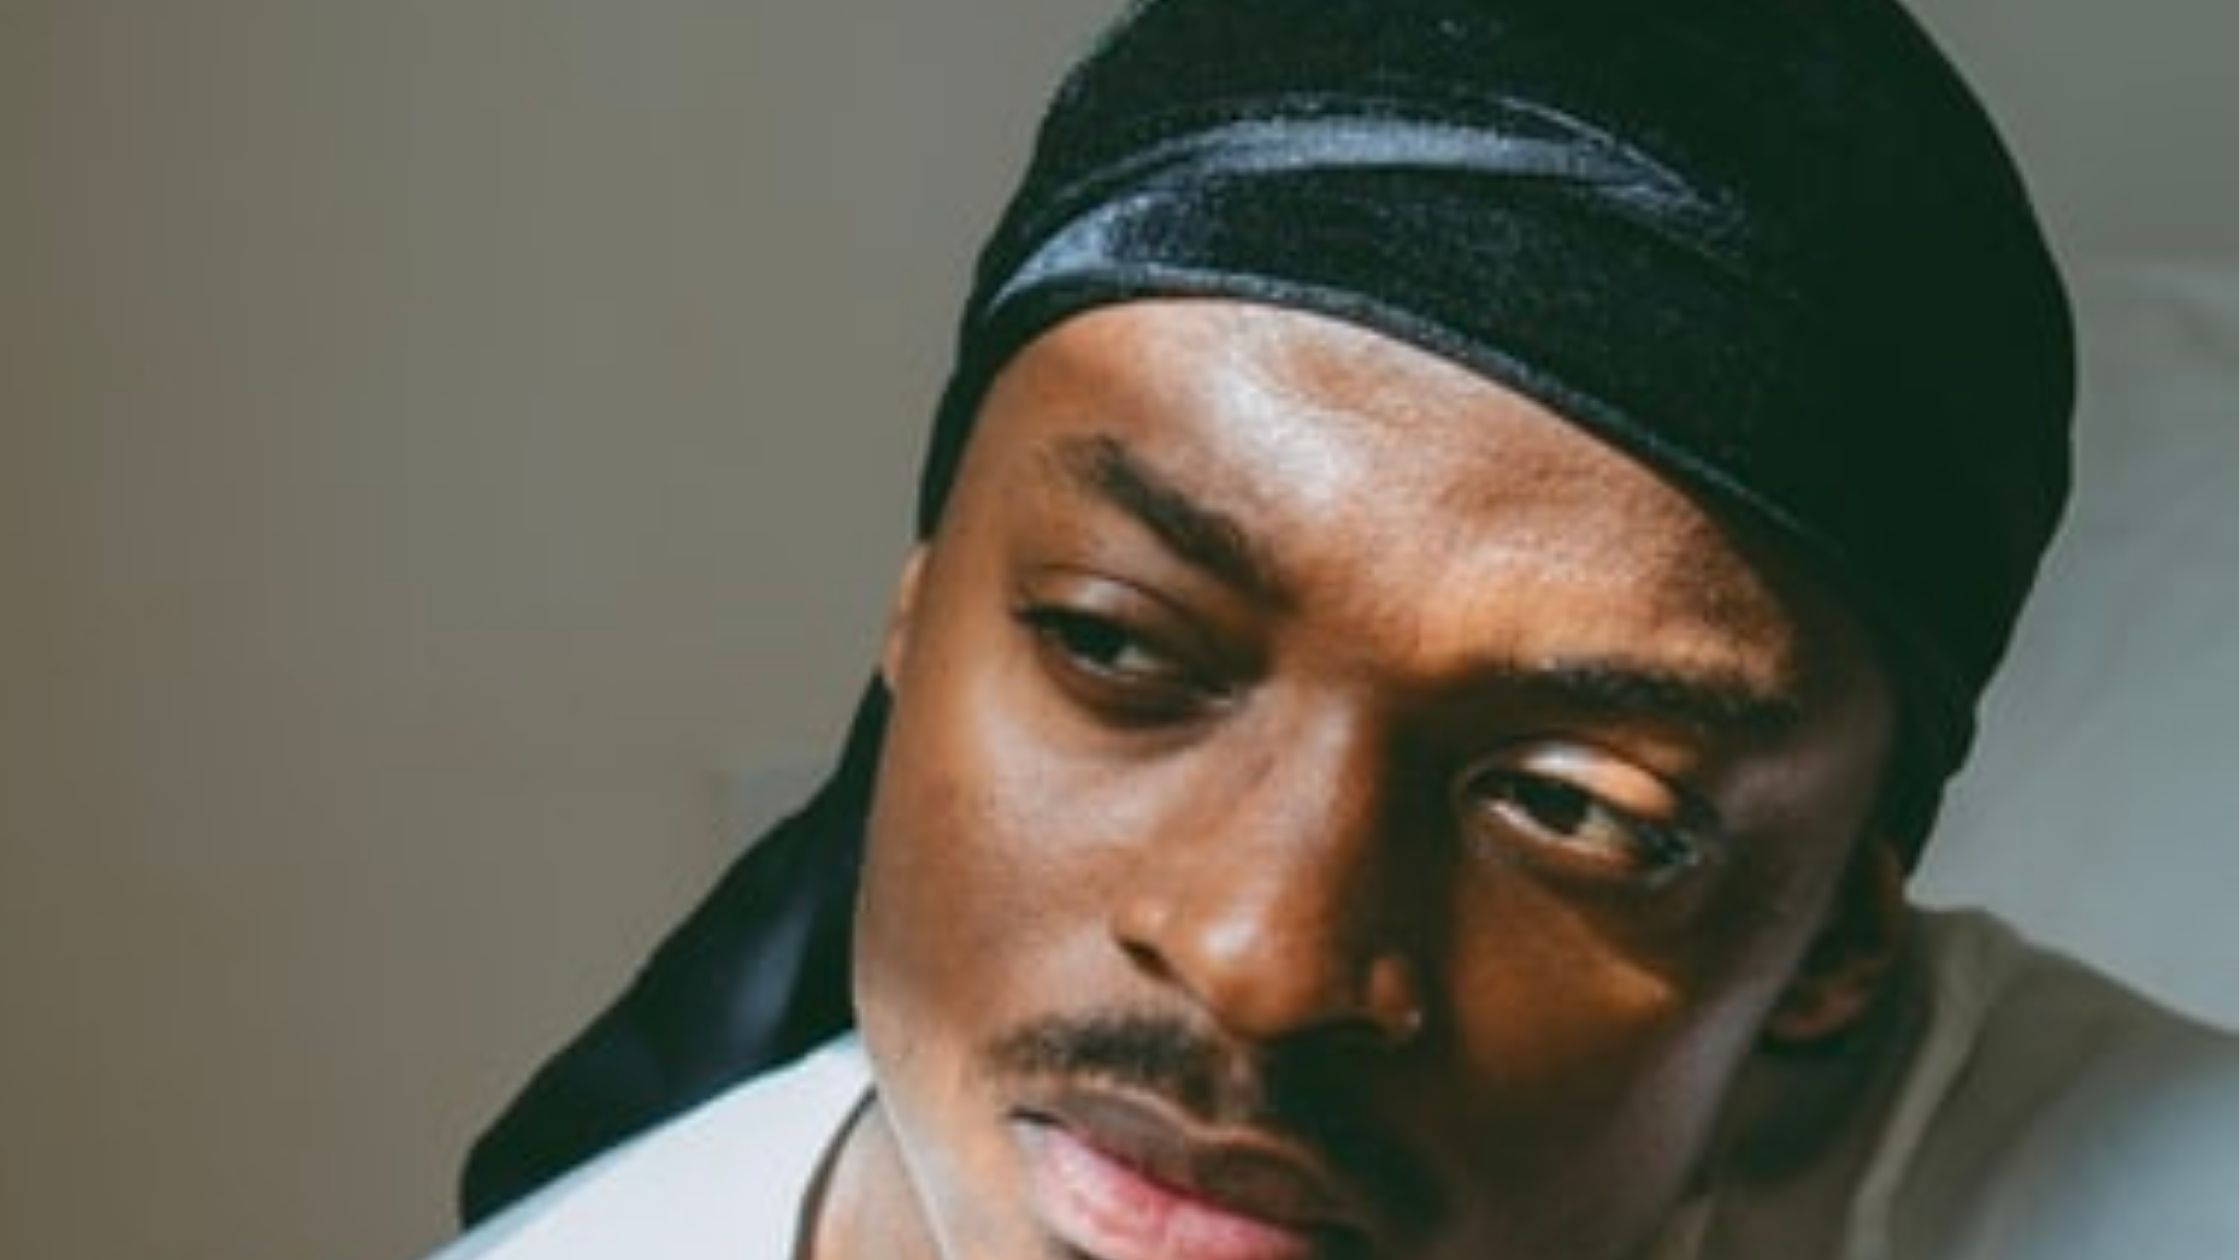 Does wearing a durag cause hair loss